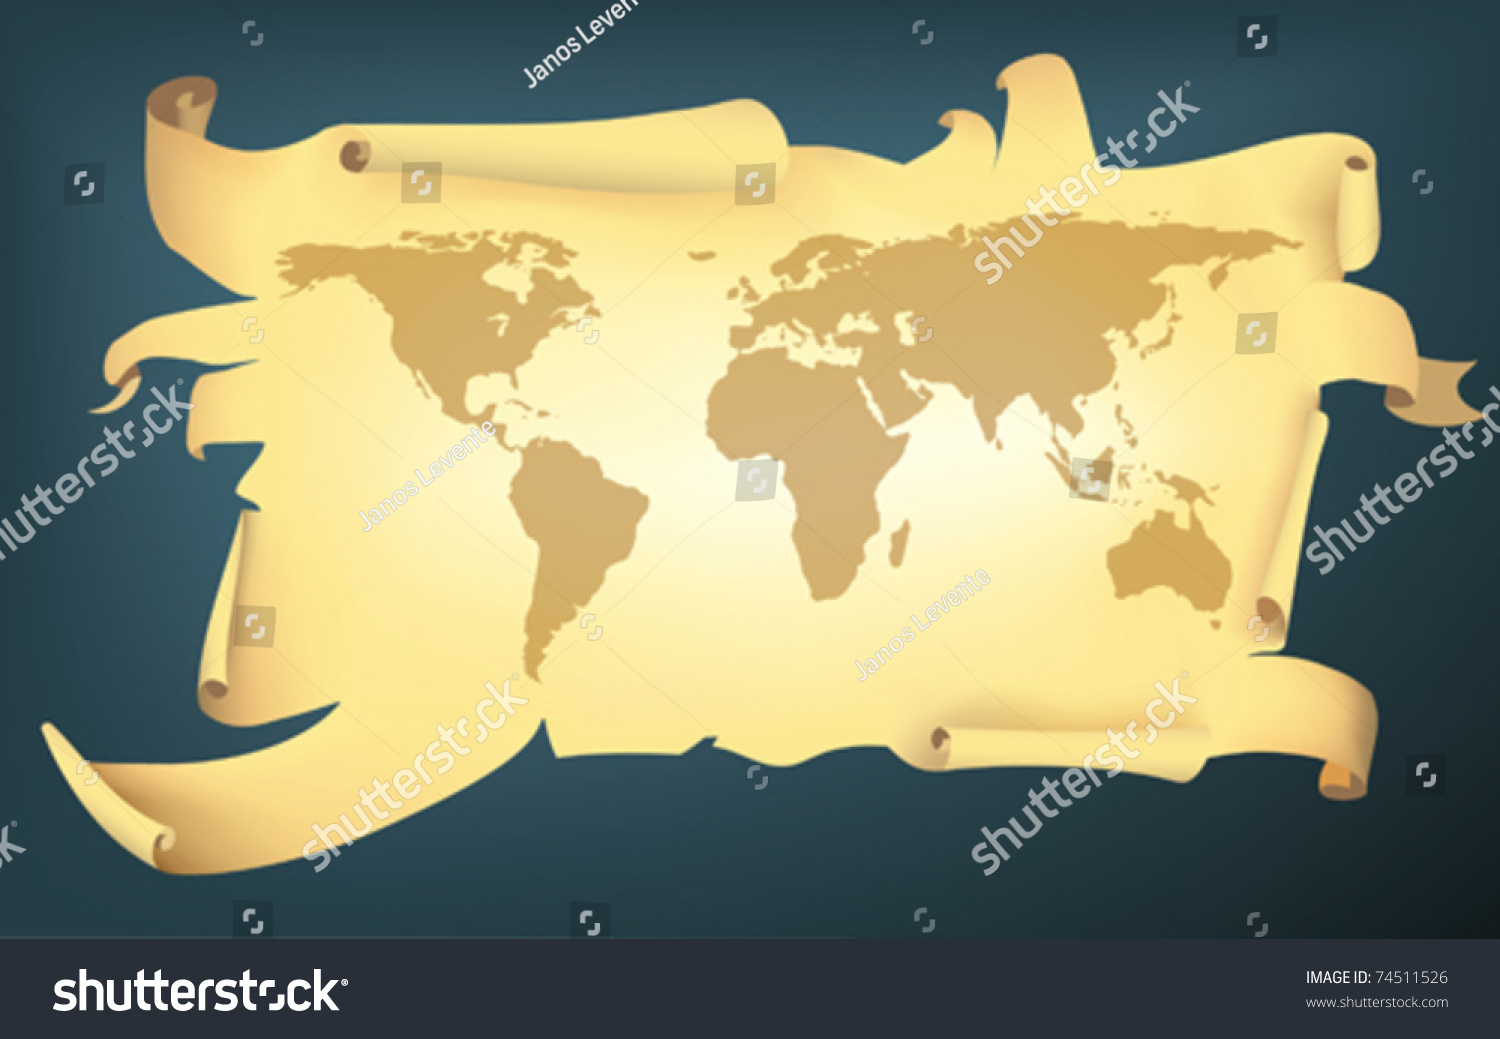 Cartoon style torn map earth stock vector 74511526 shutterstock gumiabroncs Image collections